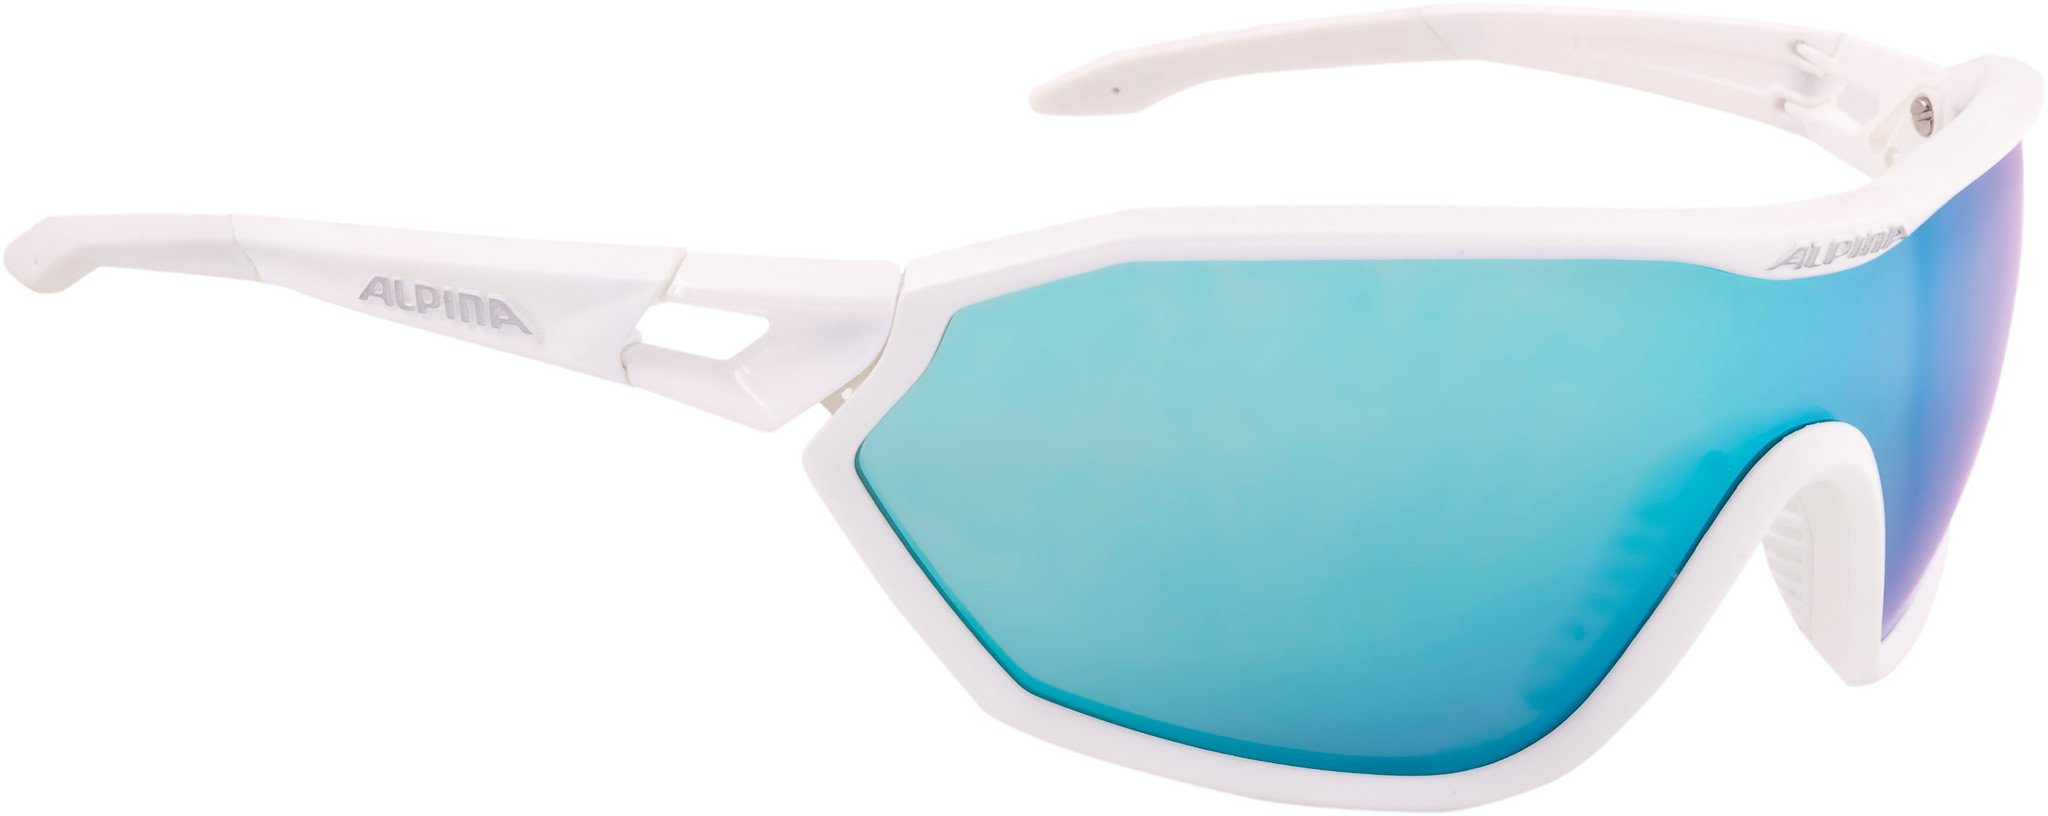 Alpina Sportbrille »S-Way CM+ Glasses«